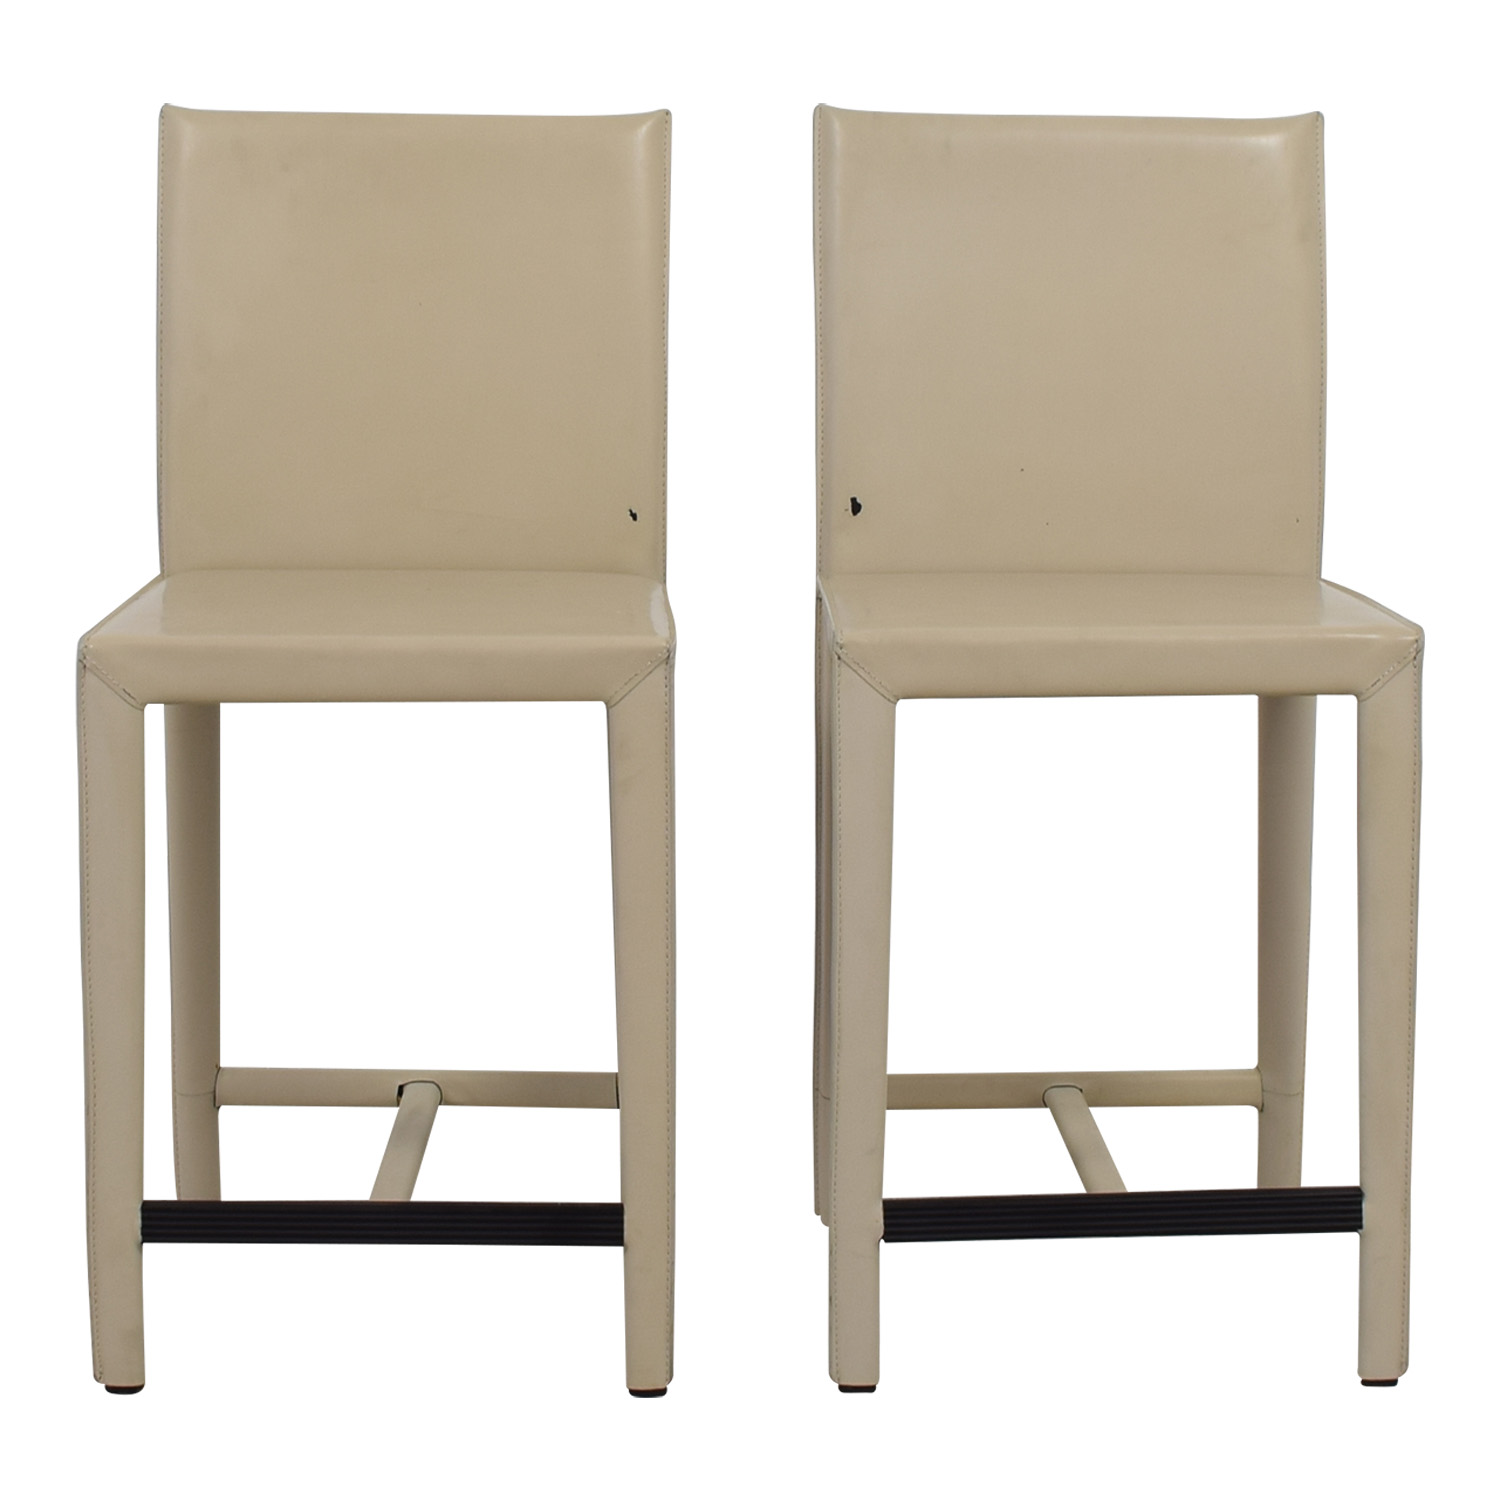 Crate & Barrel Crate & Barrel Folio Cream Leather Counter Stools on sale